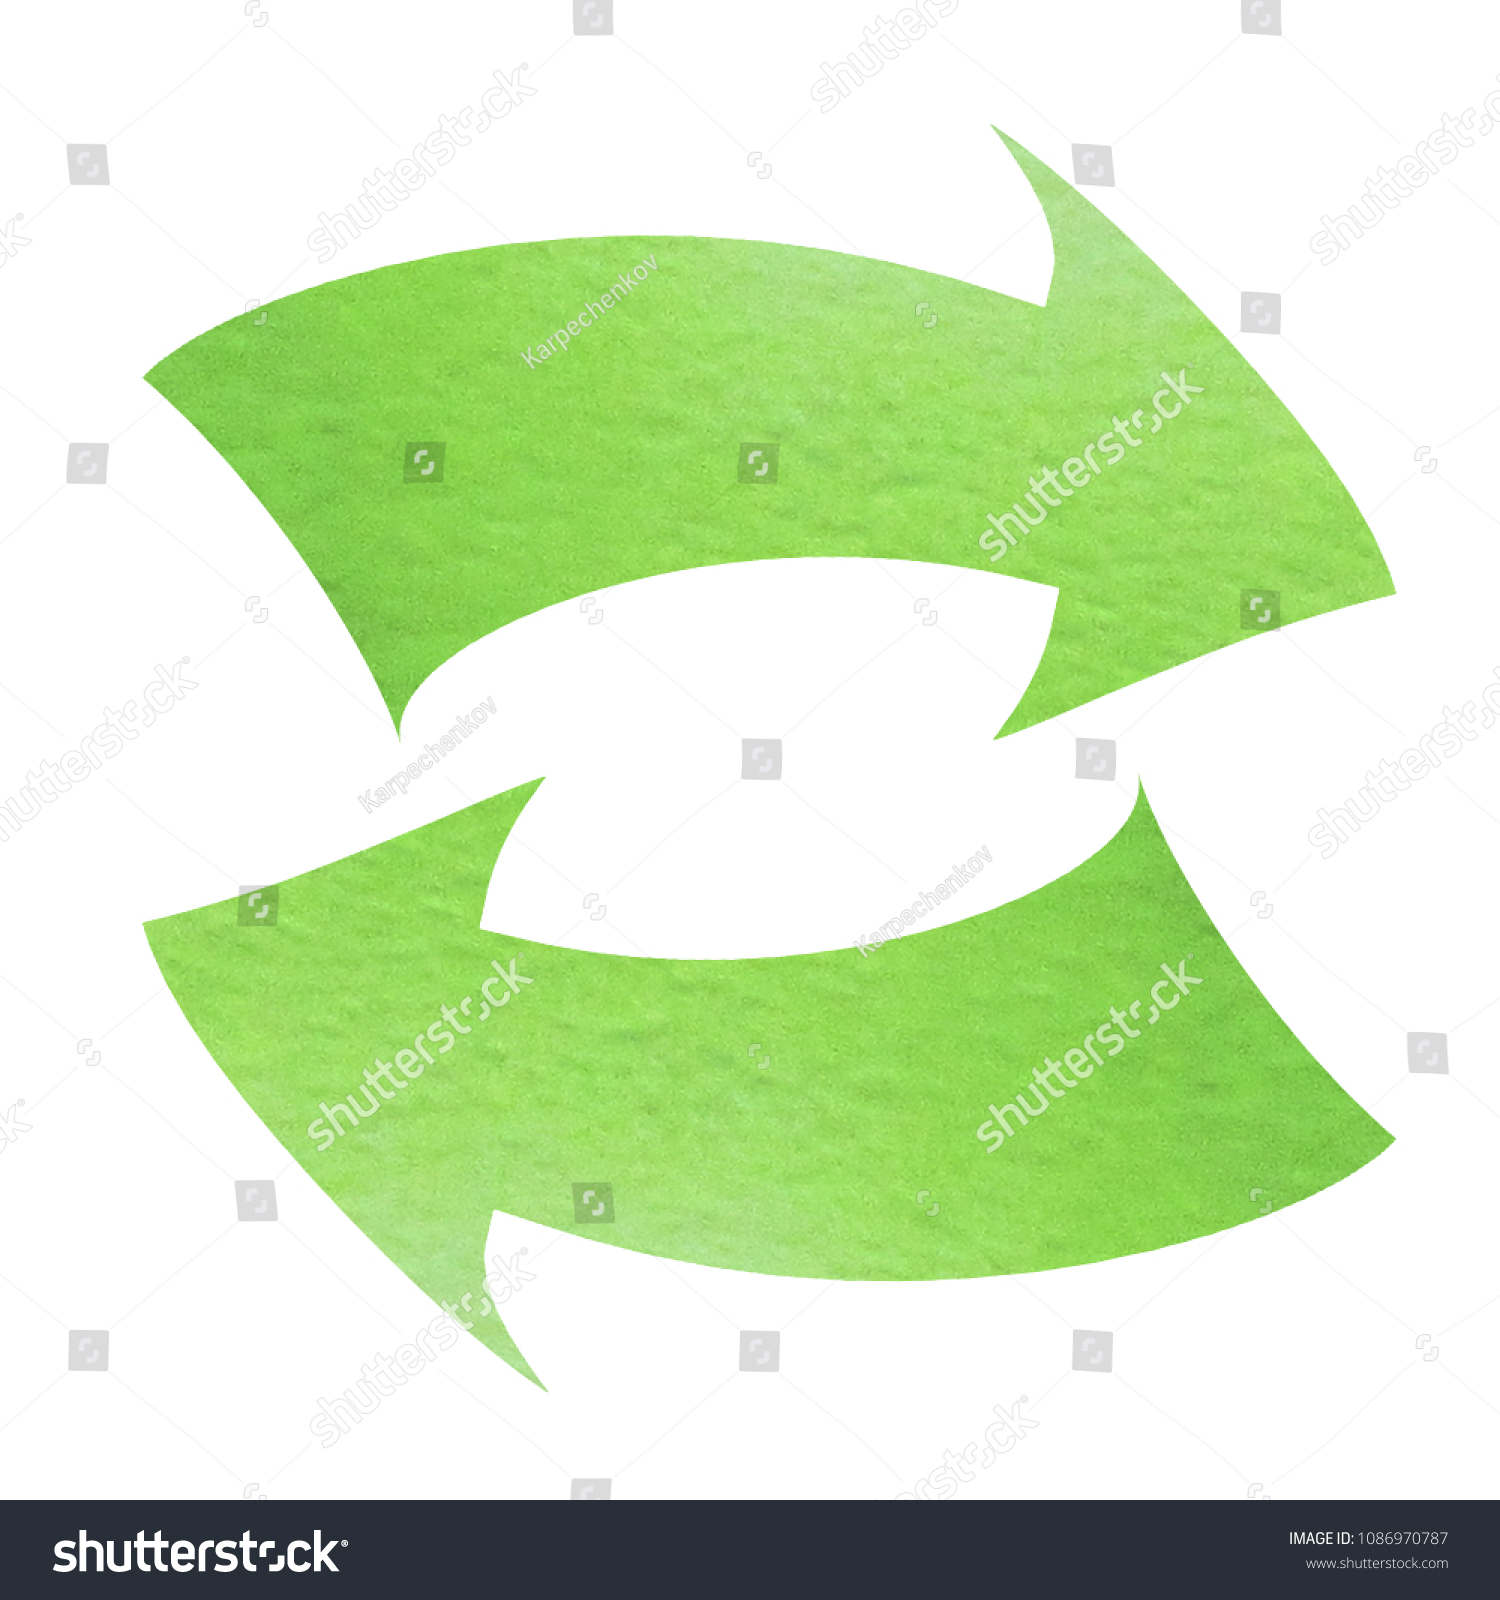 Double Ended Curved Arrow Chevron Icon Left And Right Arrows Green Watercolor Isolated On White